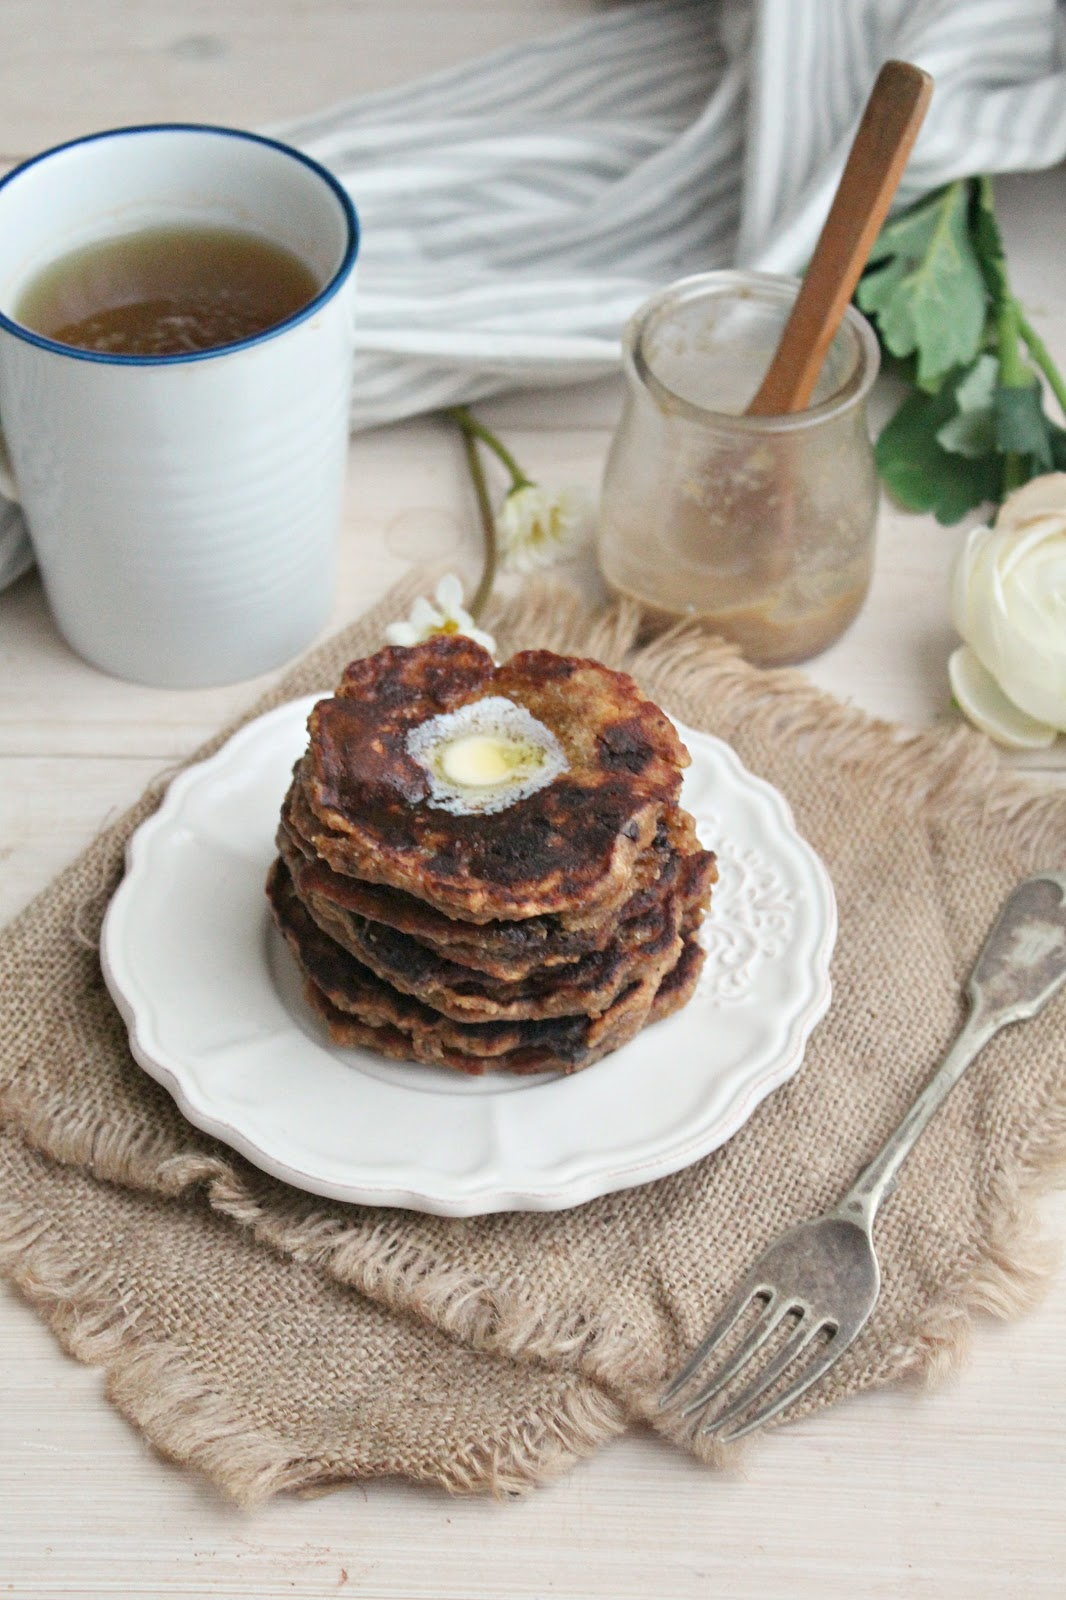 Chocolate Chunk Maca Banana Bread Pancakes - the perfect healthy vegan breakfast treat!